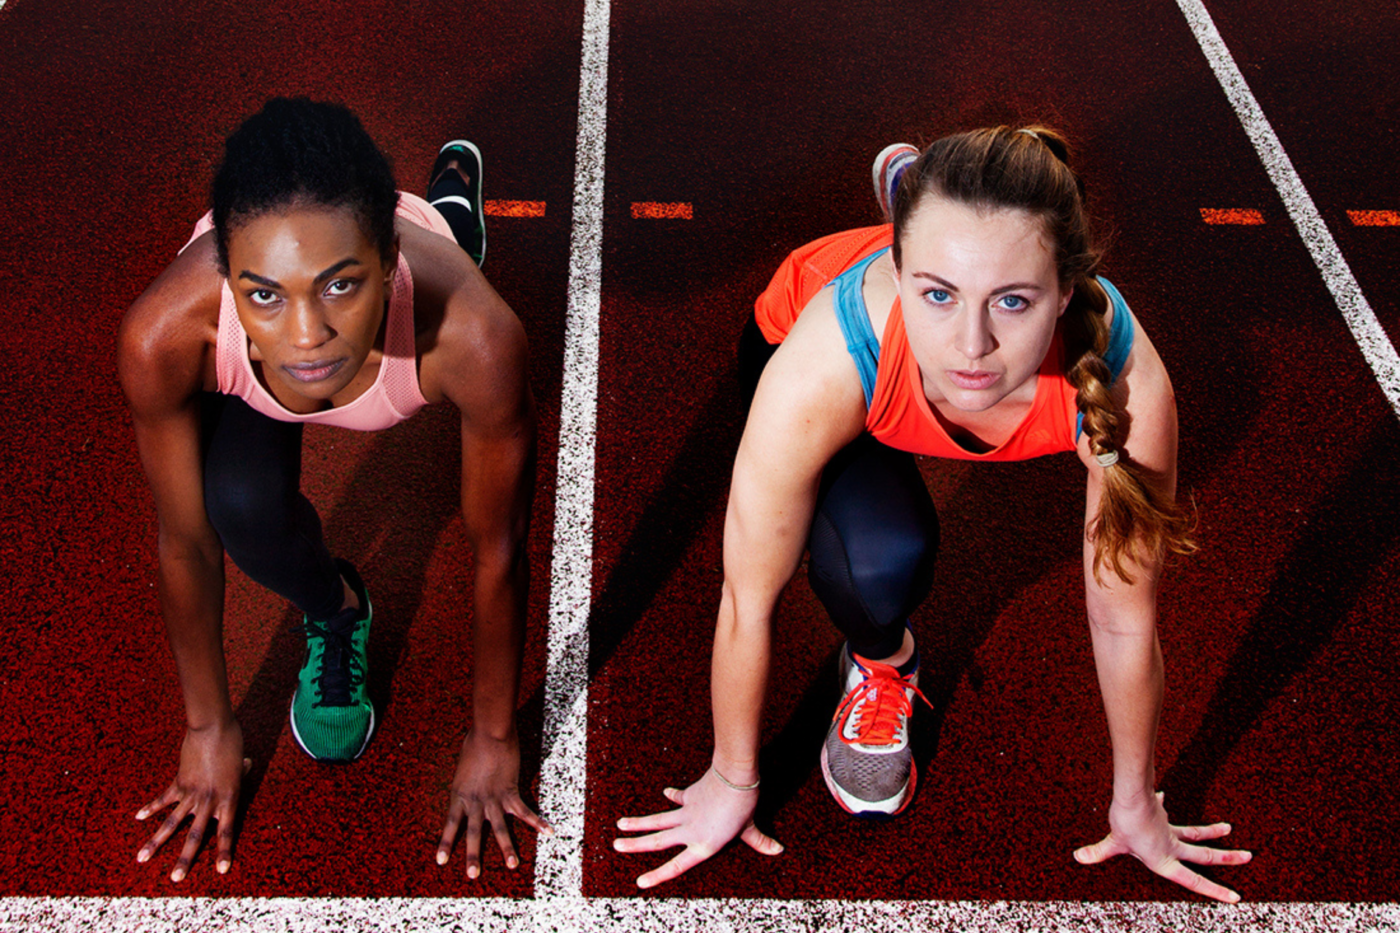 Two women in starting positions on a deep red running track, separated by white lane markings, both in running leggings, vest tops and trainers. To the left, a black woman with hair tied back. To the right, a white woman with plaited ponytail.